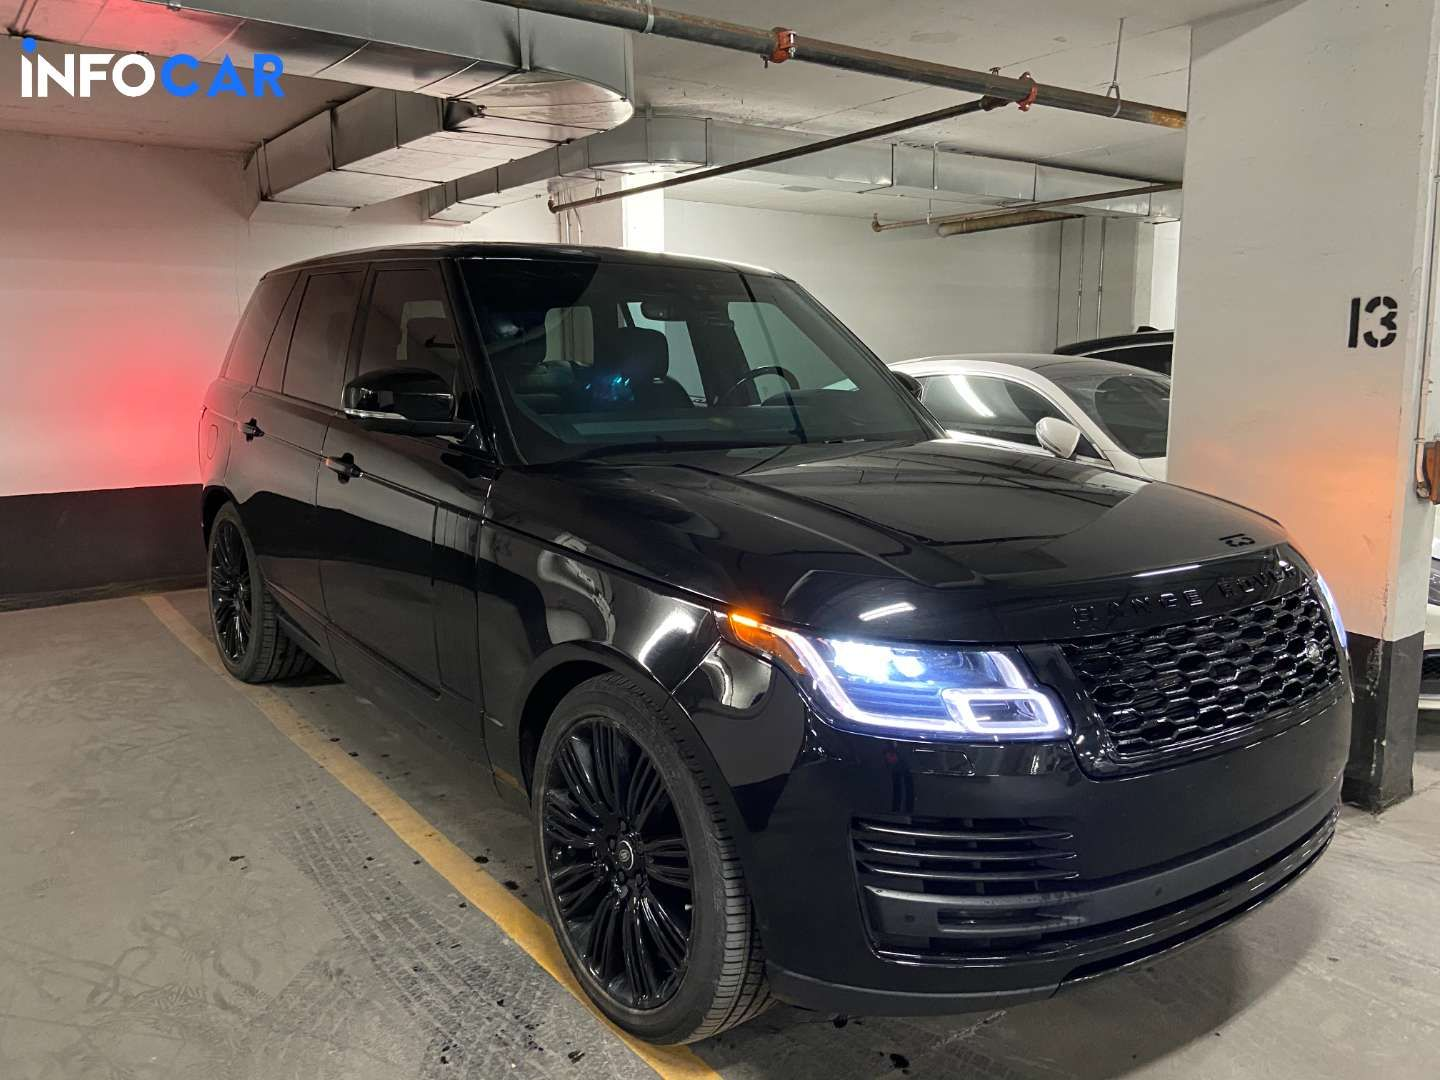 2018 Land Rover Range Rover Range Rover V8 Supercharged SWB - INFOCAR - Toronto's Most Comprehensive New and Used Auto Trading Platform